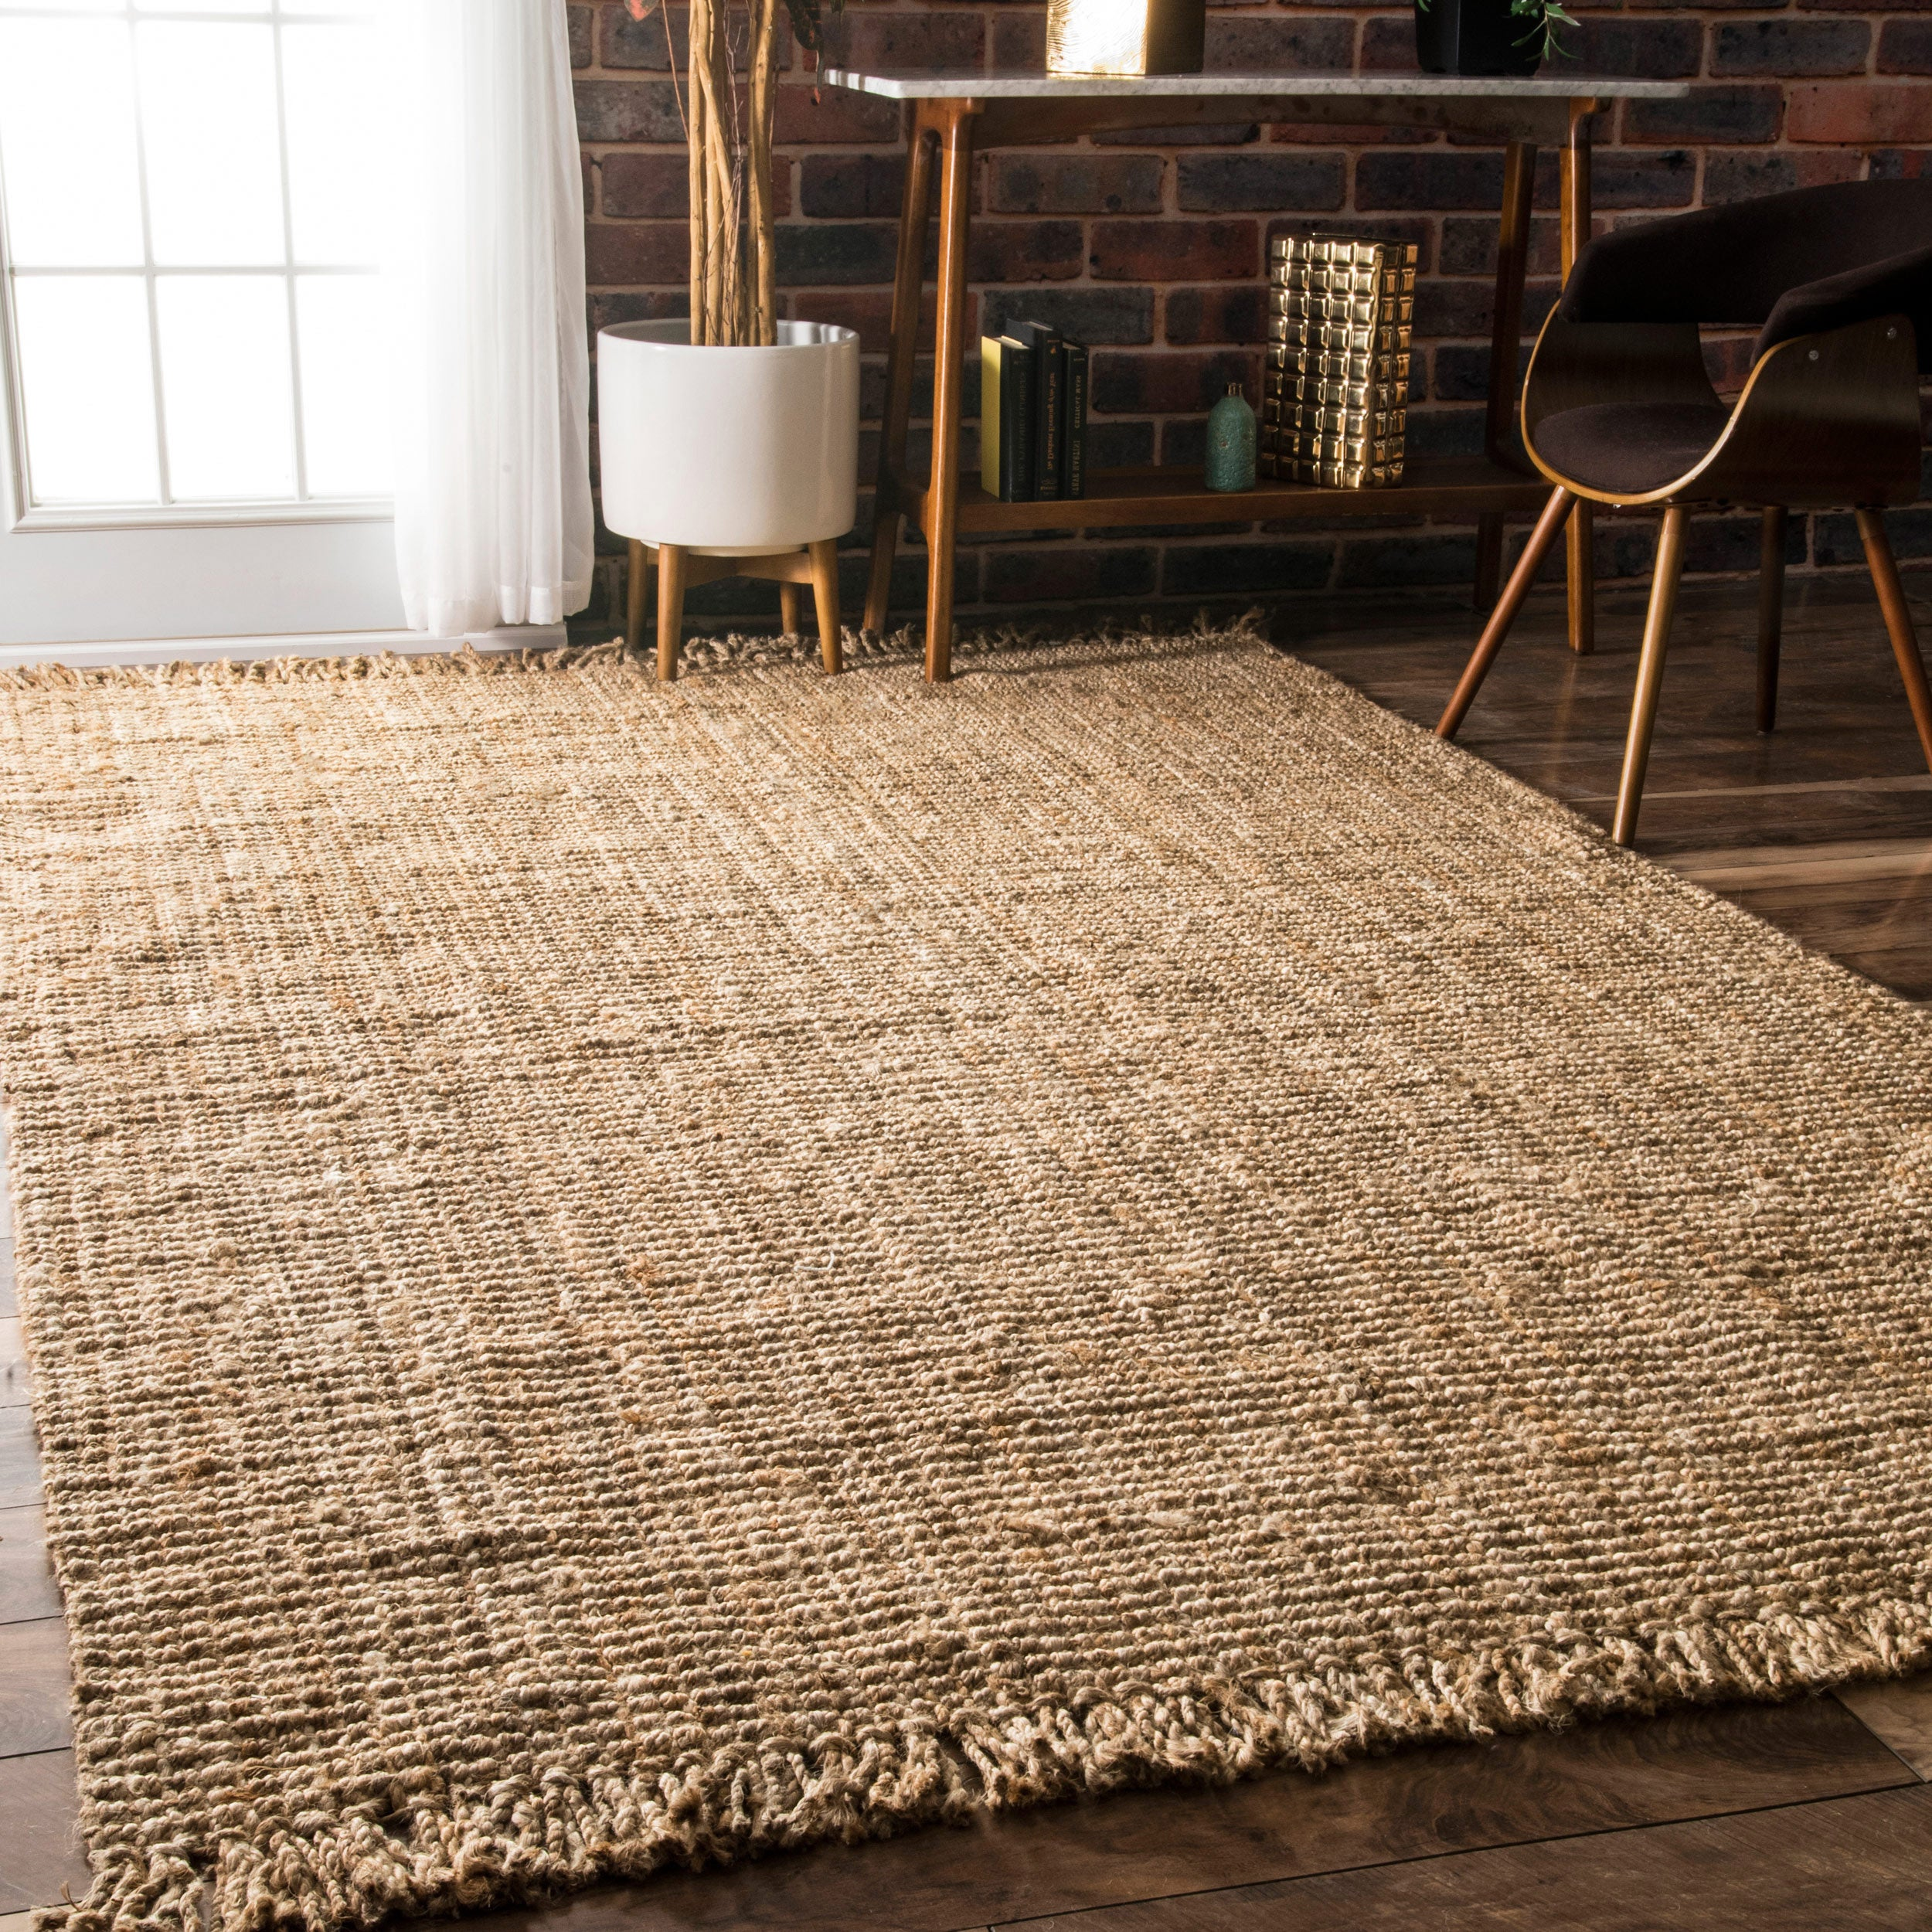 jute rugs reversible havenside today free shipping nuloom la fiber garden jolla x product eco area natural alexa home round overstock braided rug